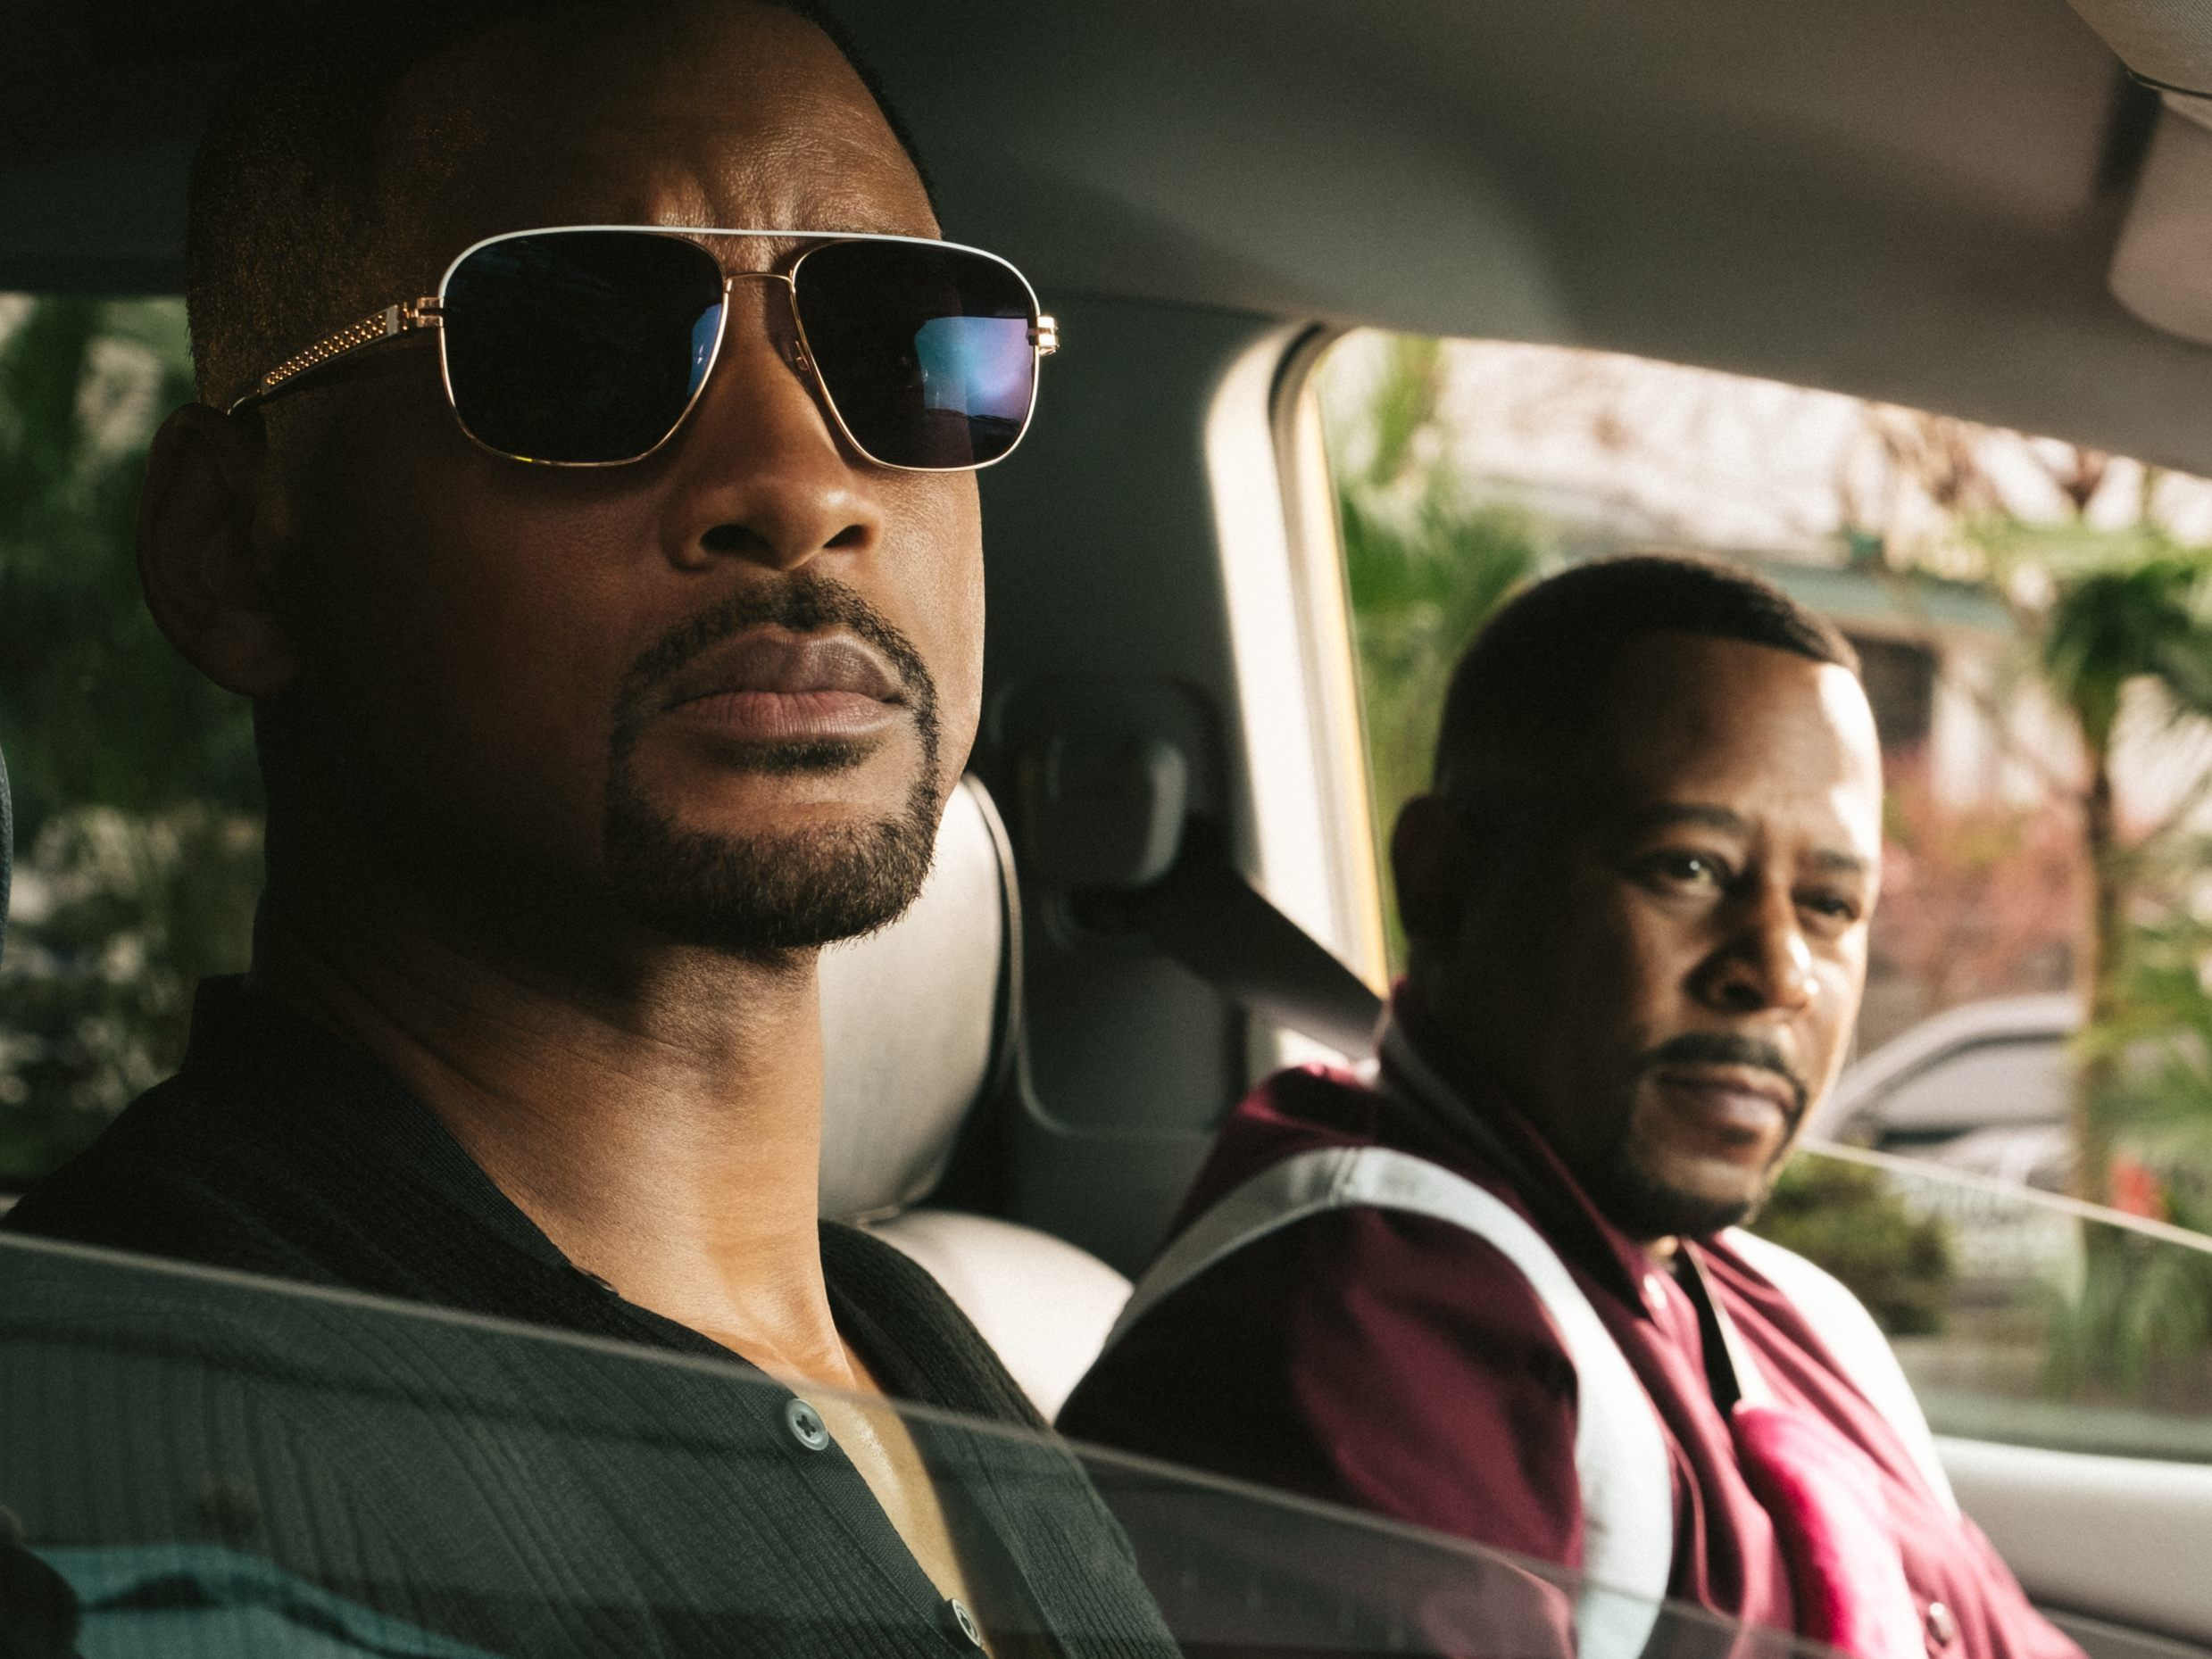 Mike Lowrey (Will Smith, l.) und Marcus Burnett (Martin Lawrence, r.) in Sony Pictures' BAD BOYS FOR LIFE.